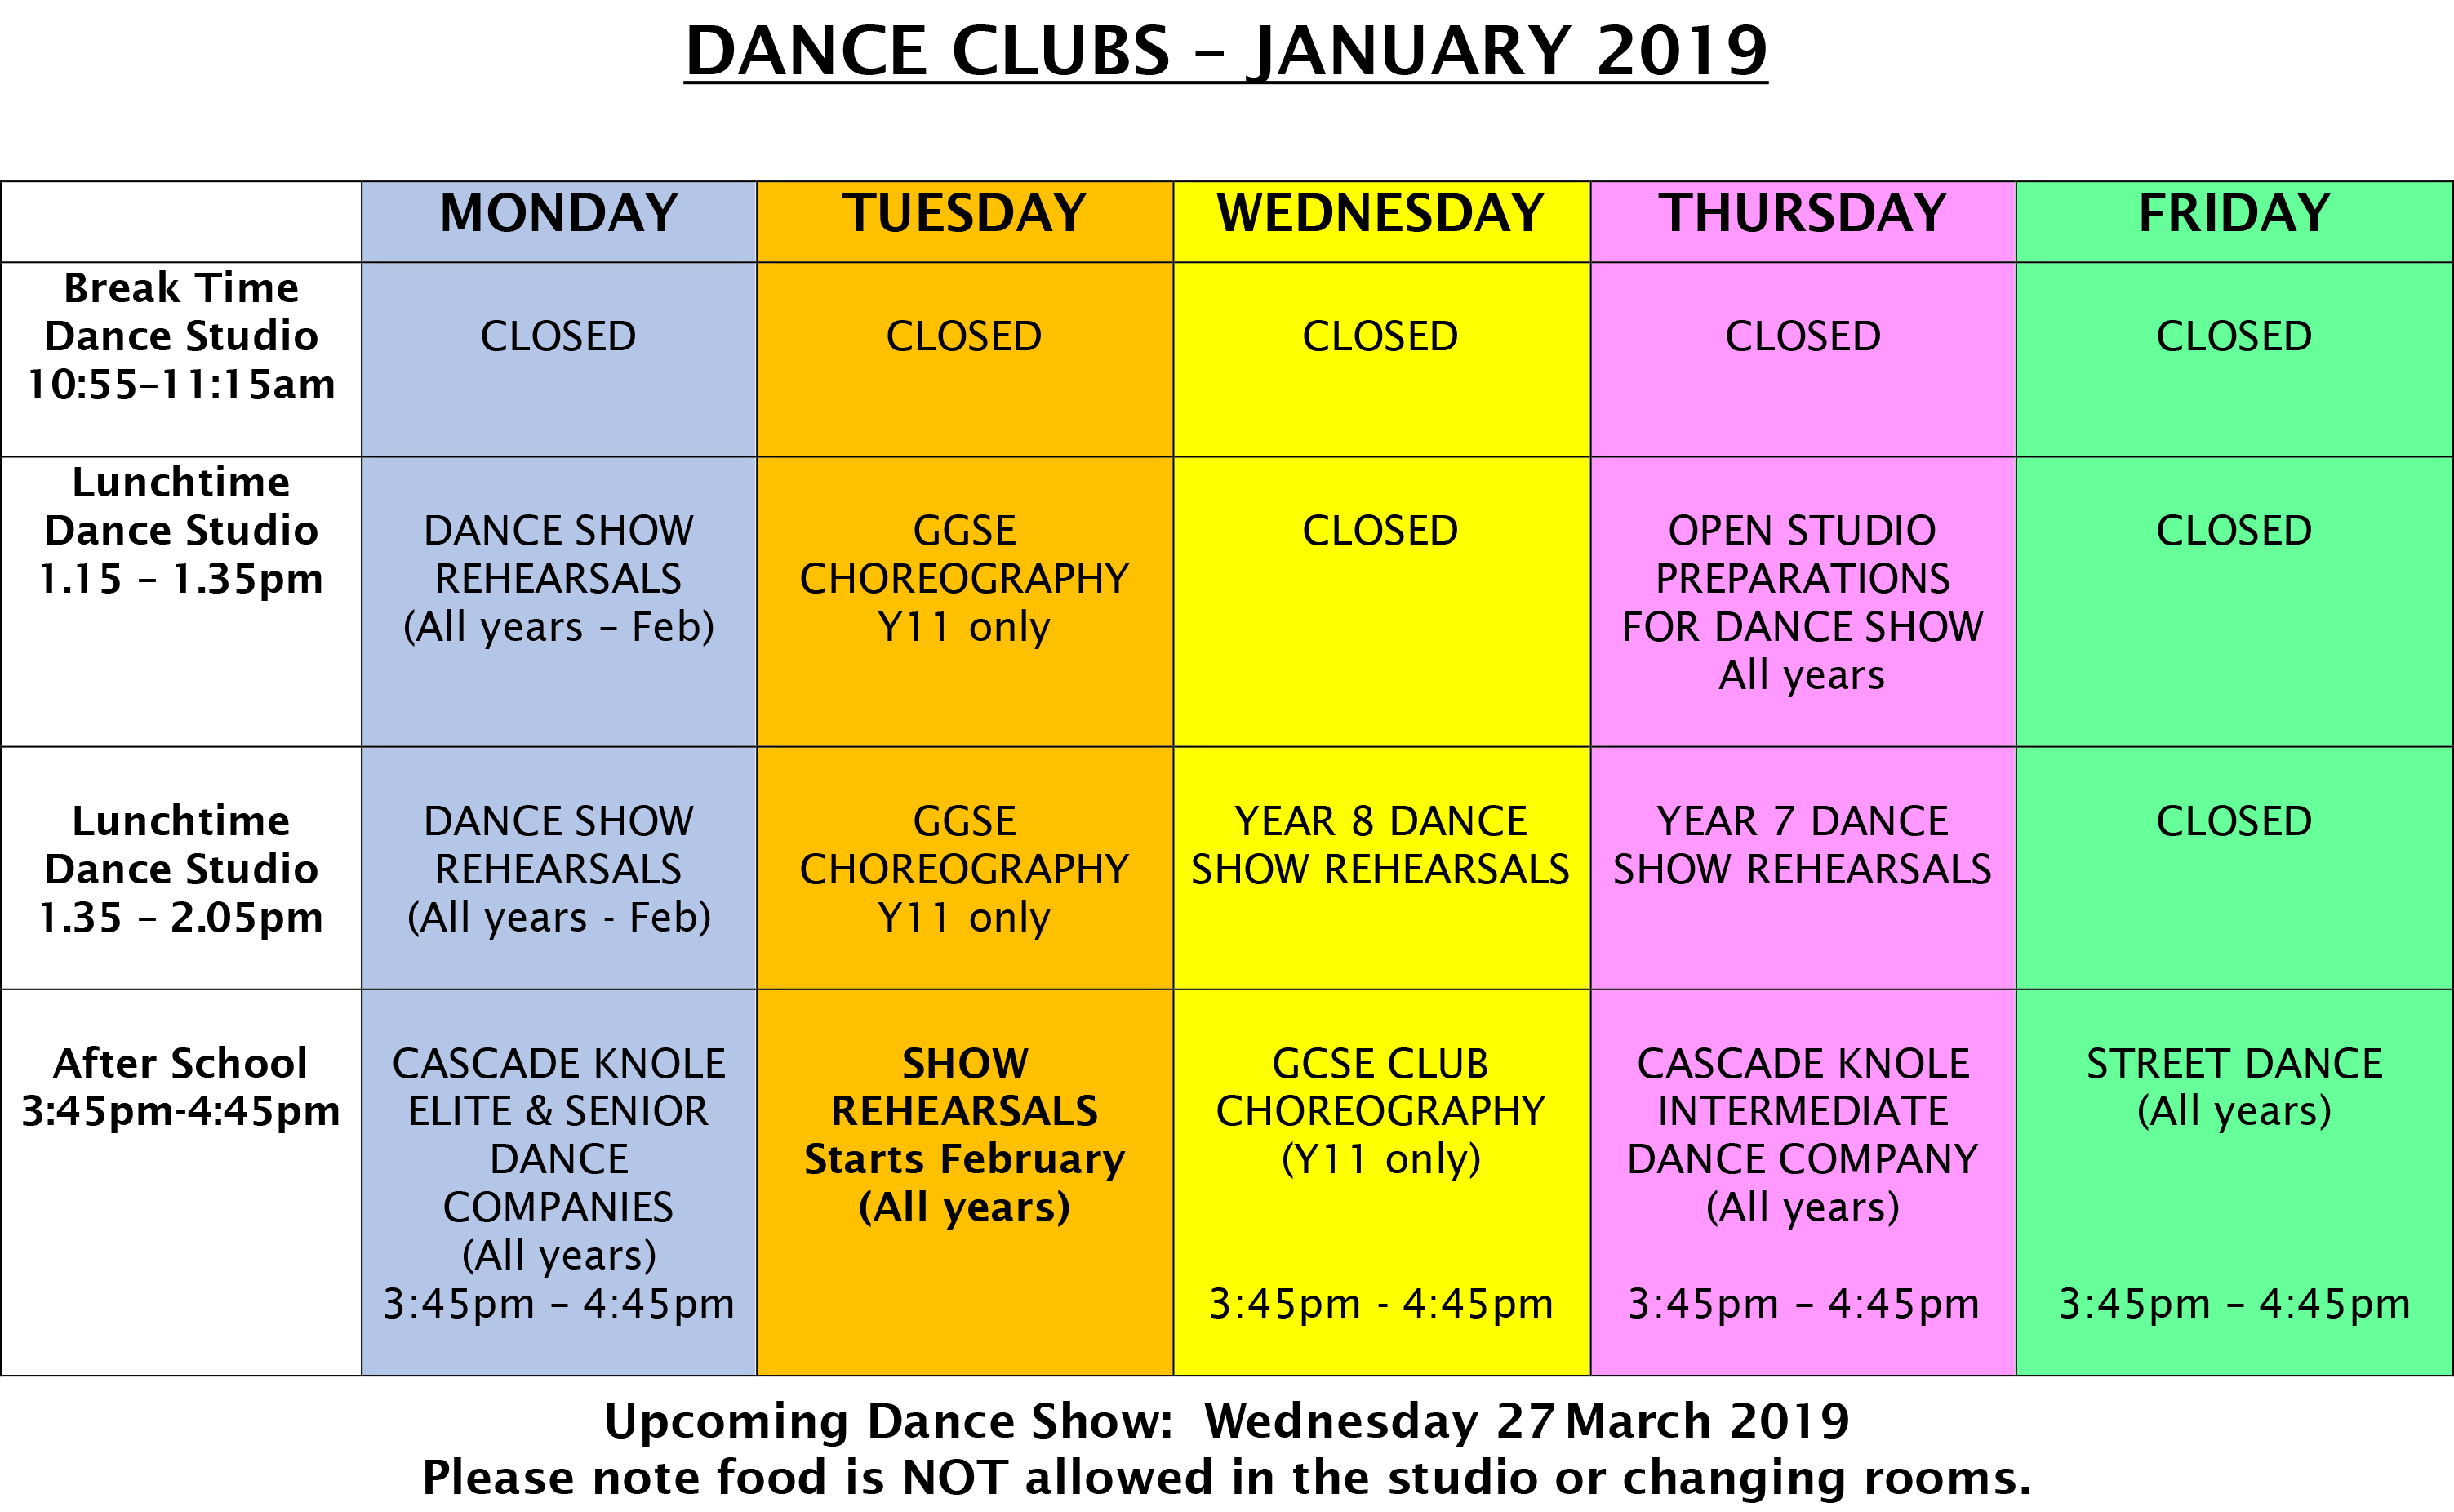 DANCE CLUBS Term 3 January 2019 Final